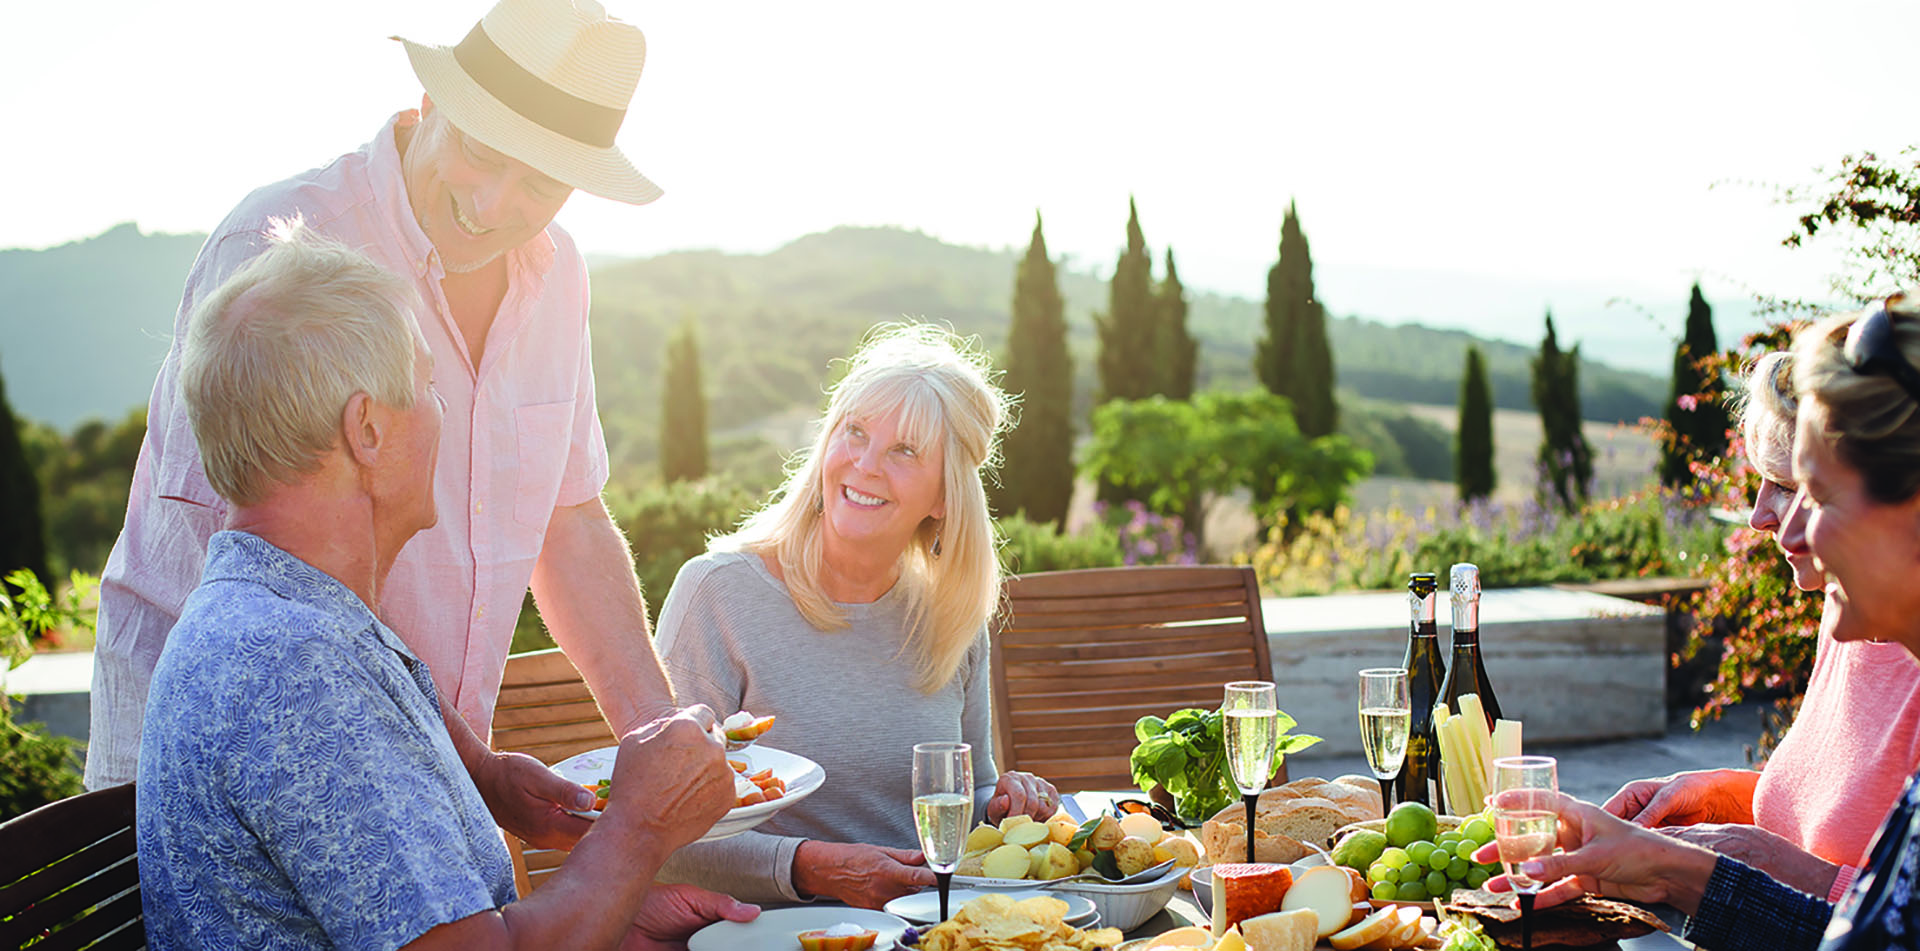 Europe Italy Tuscany alfresco lunch happy travelers eating food wine tour - luxury vacation destinations